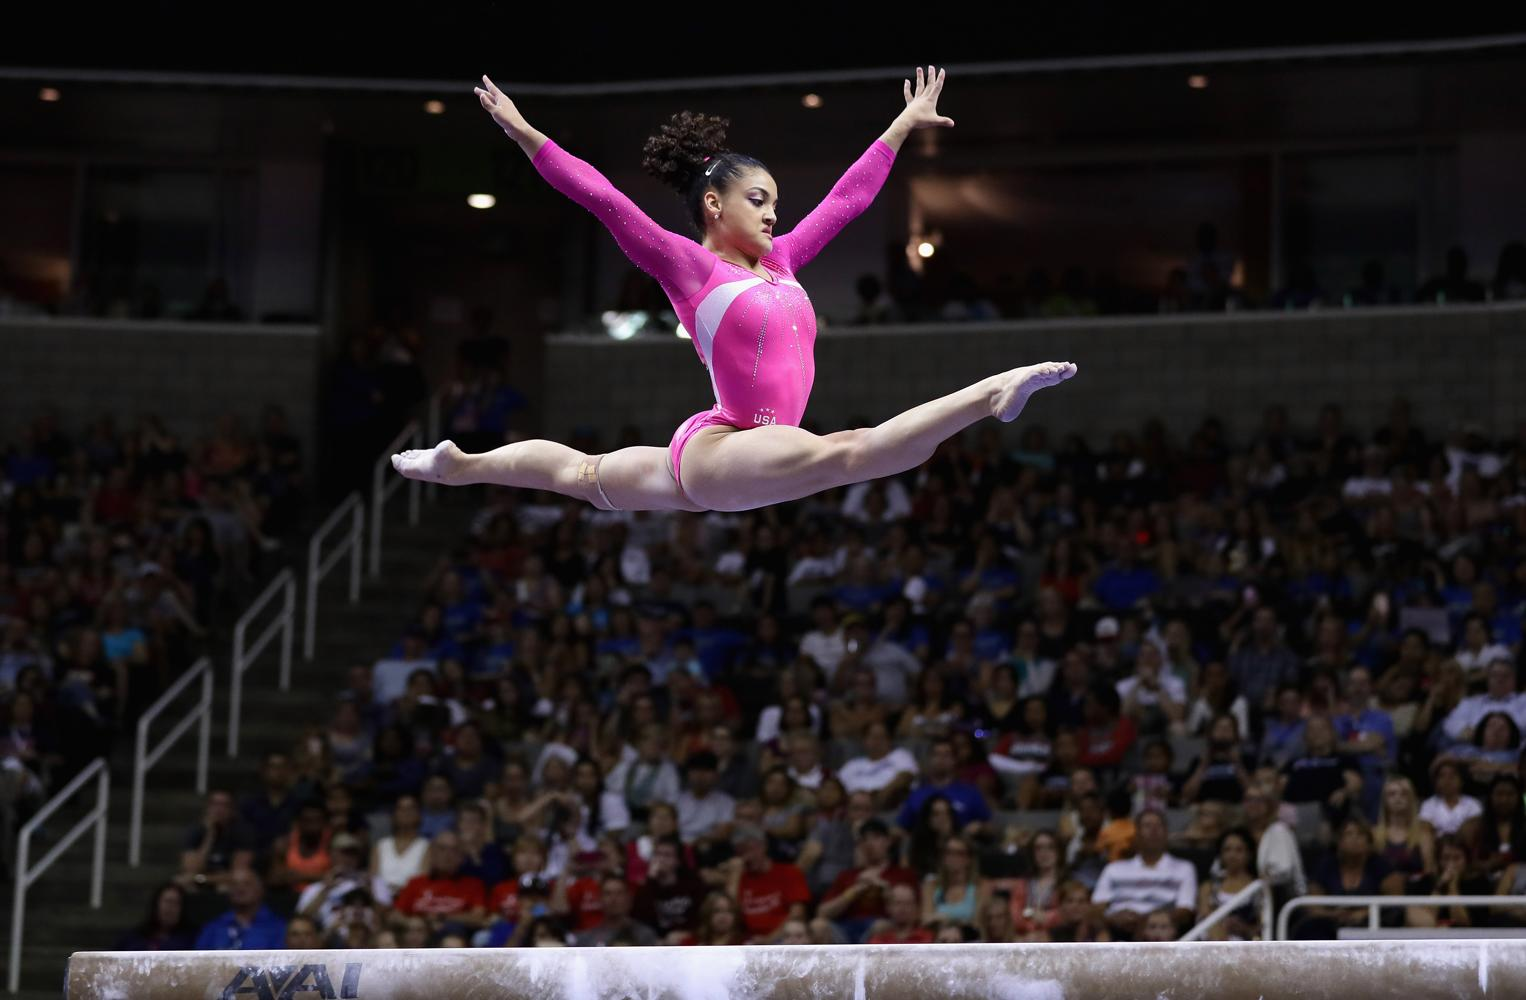 Meet Team USA gymnast Laurie Hernandez